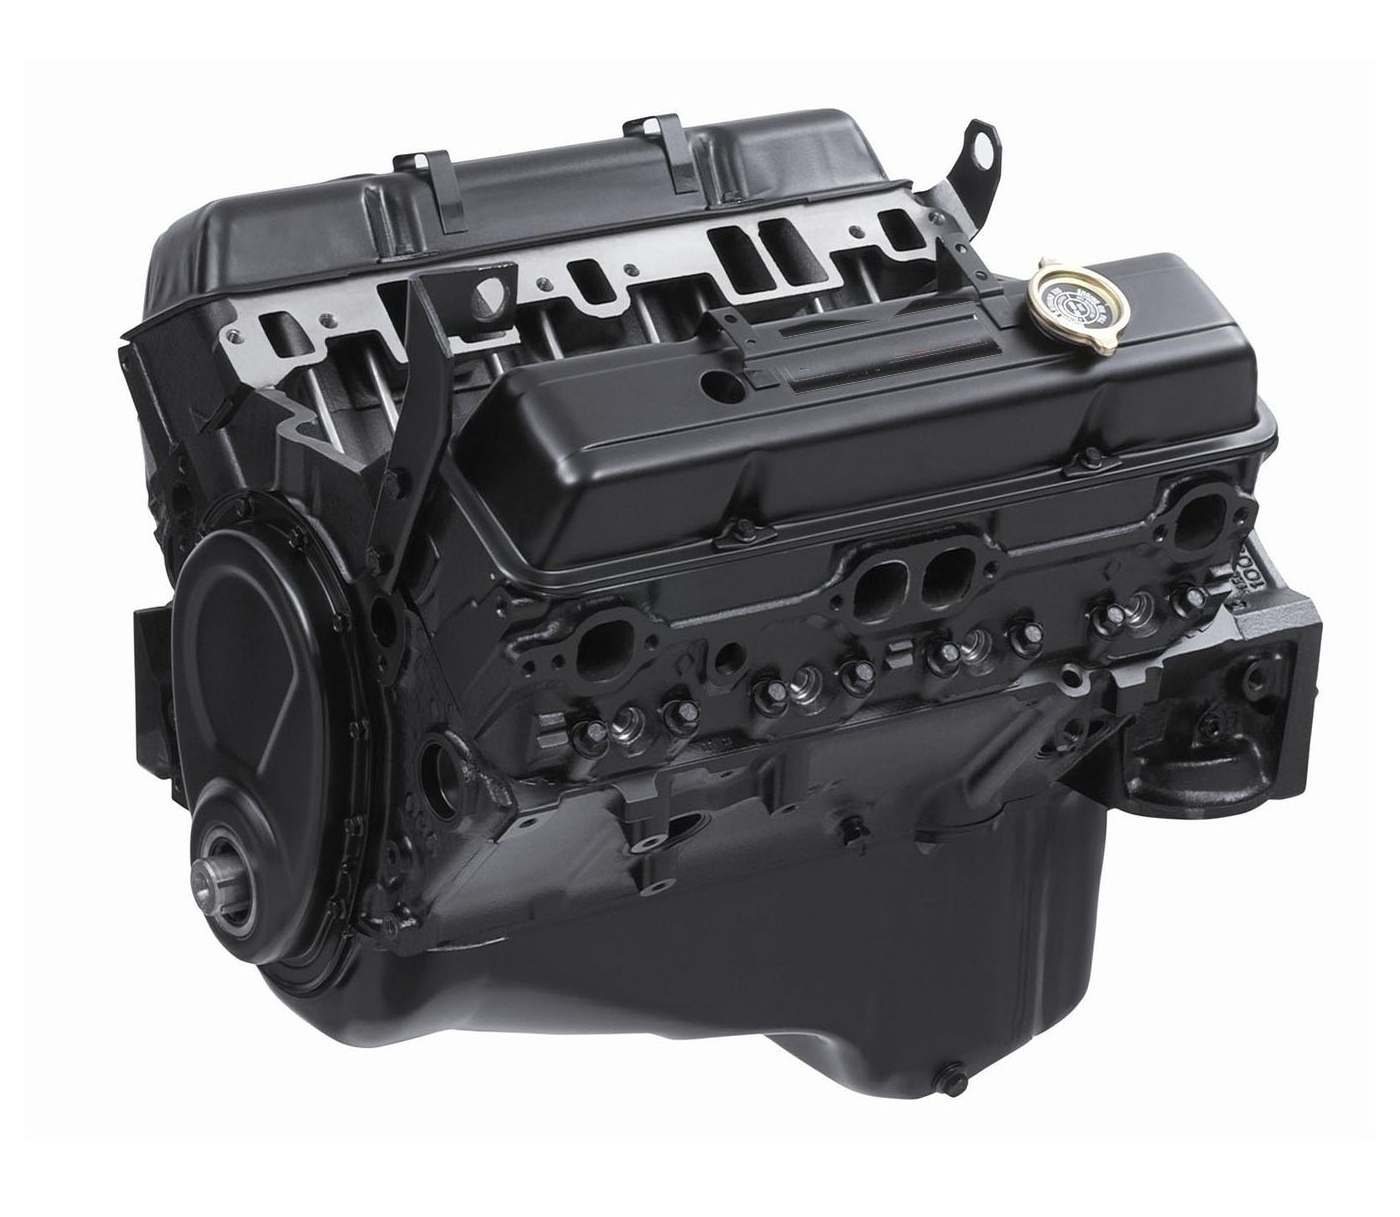 5.7L Reman Long Block Engine For Chevrolet K20